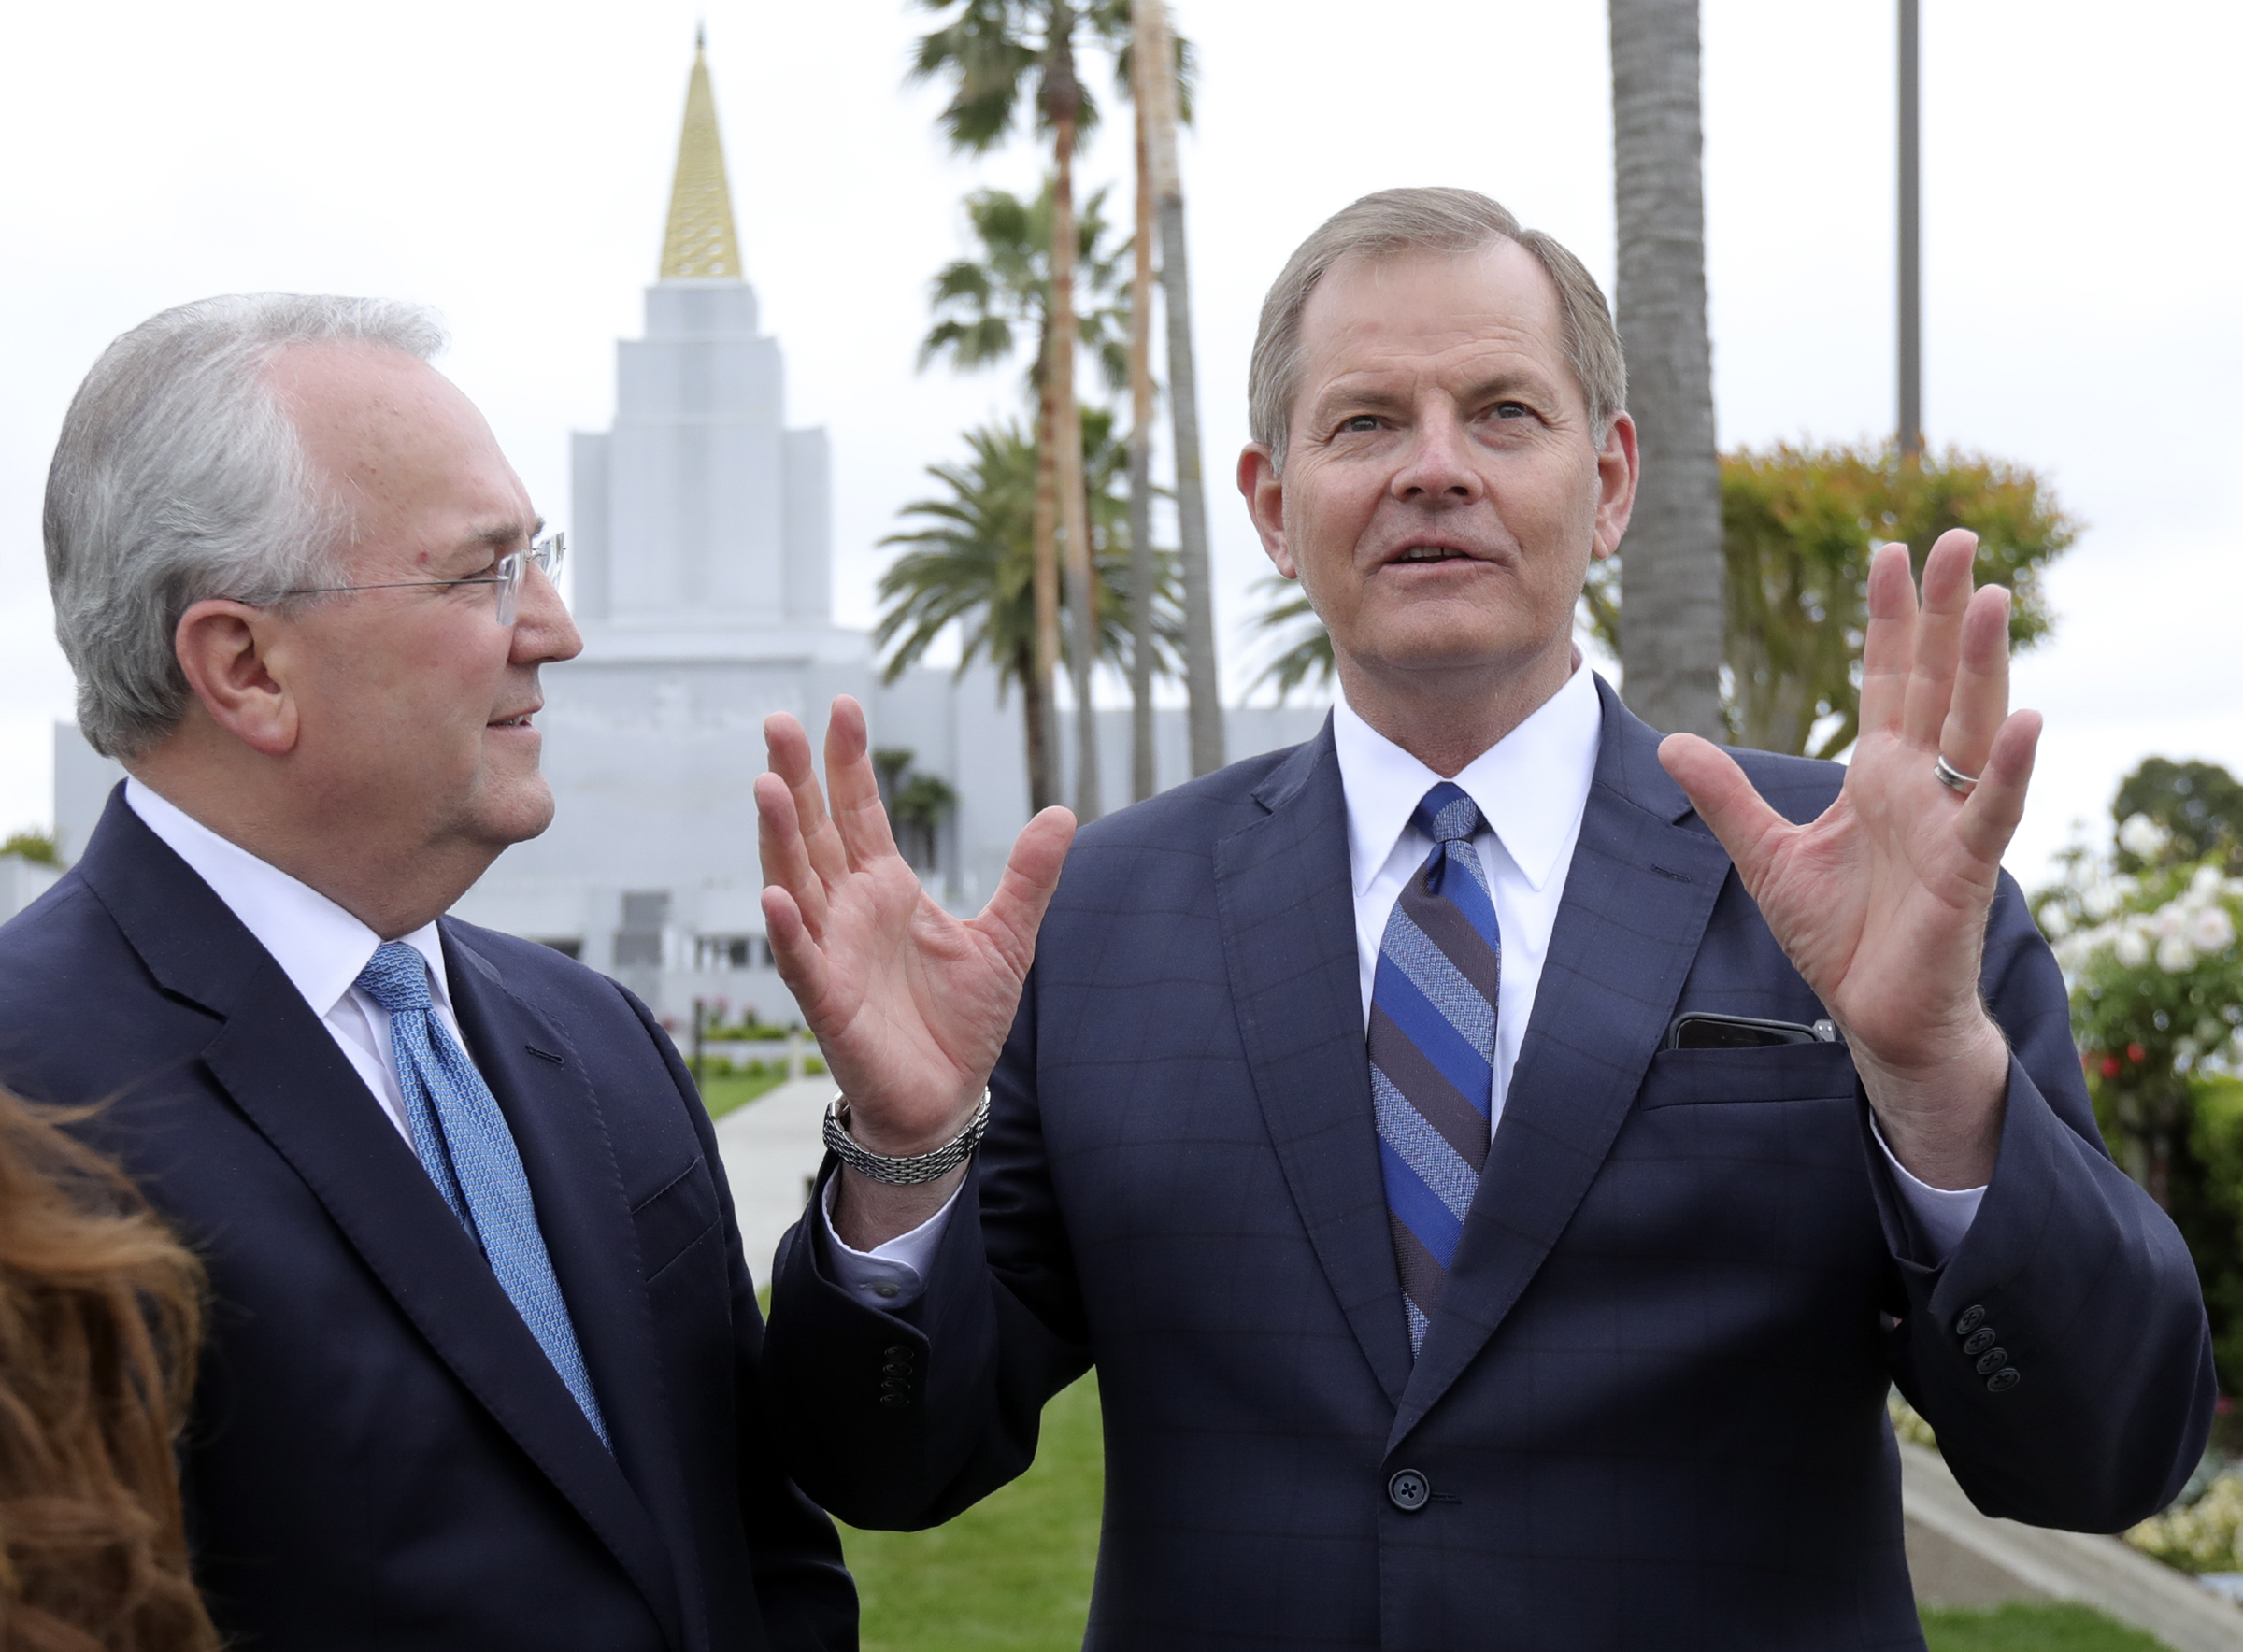 Elder Jack N. Gerard, right, a General Authority Seventy, and Elder Gary E. Stevenson, of the Quorum of the Twelve Apostles talk to members of the media outside of the newly renovated Oakland California Temple, of The Church of Jesus Christ of Latter-day Saints, in Oakland, Calif., on Monday, May 6, 2019.